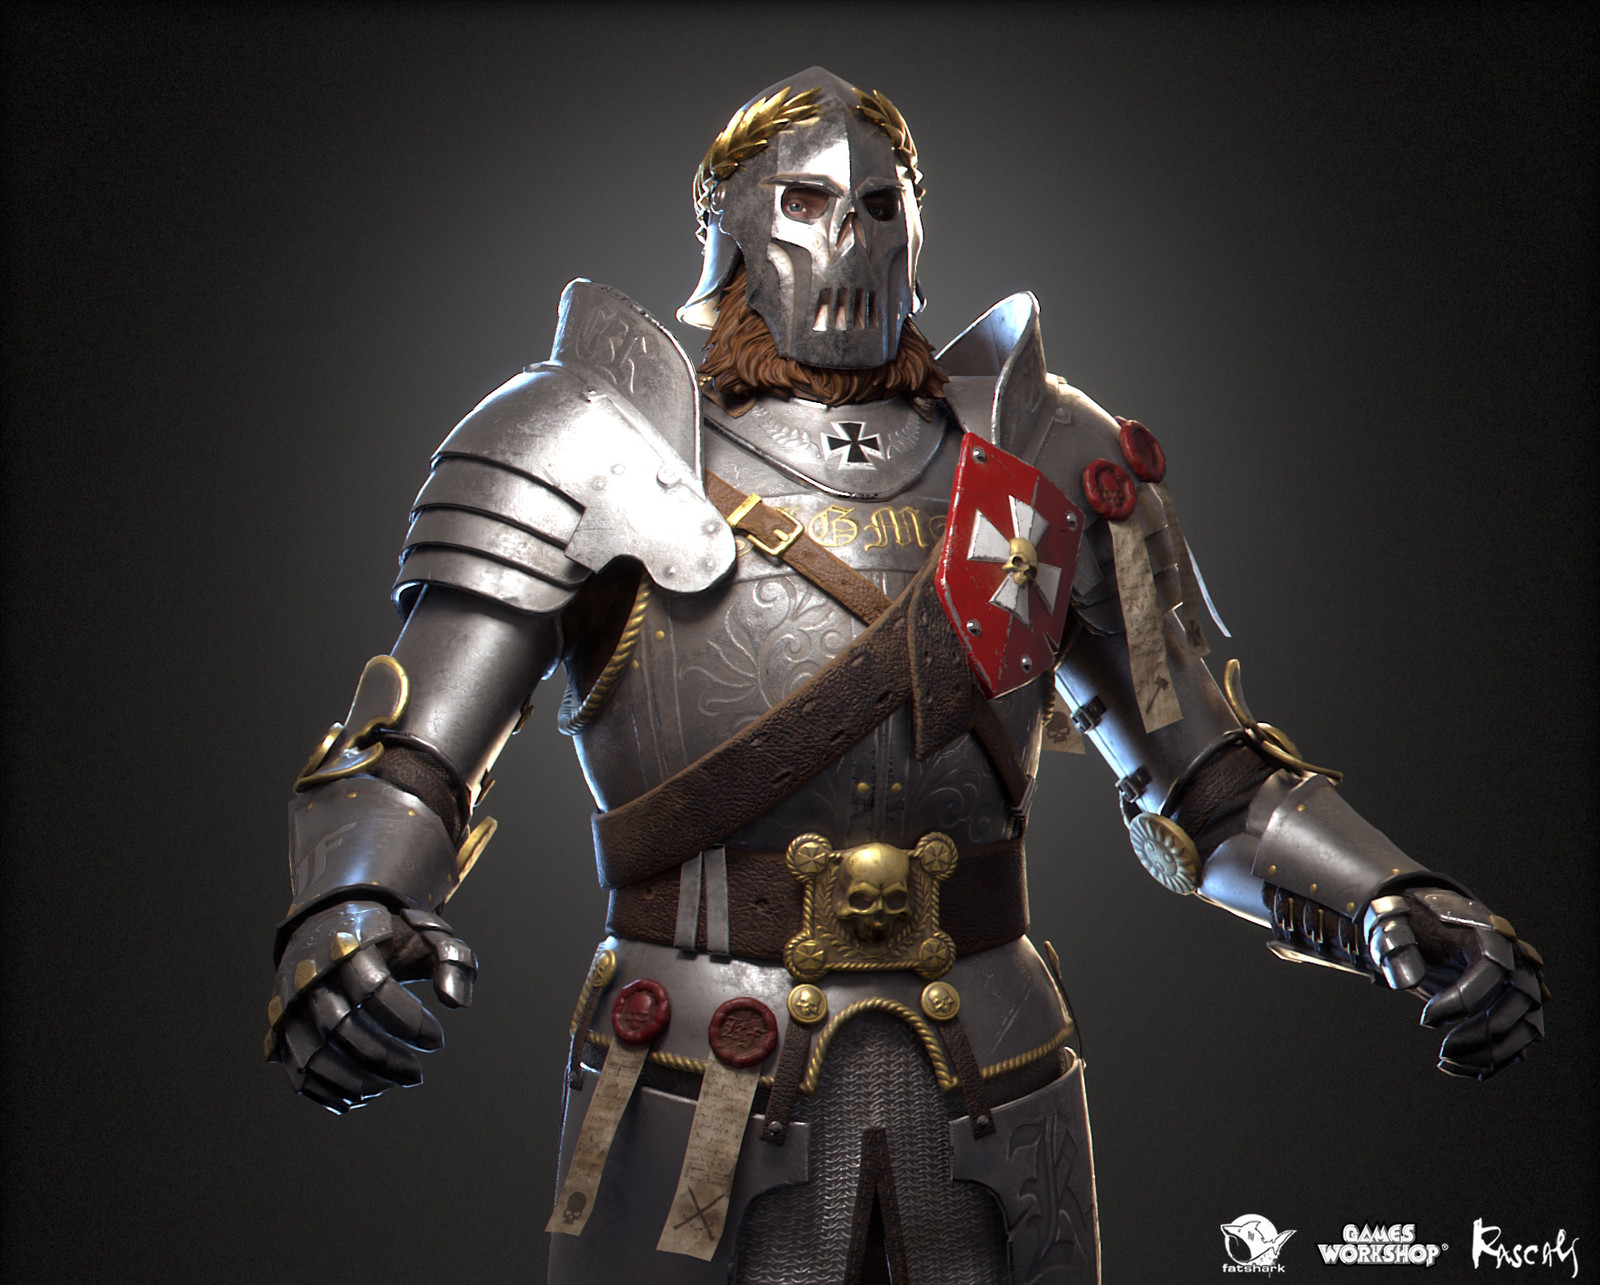 Markus Kruber: Foot Knight is one of the playable hero variants Rascals made for Warhammer: Vermintide II, Fatshark's award-winning co-op meelee action published by Games Workshop.